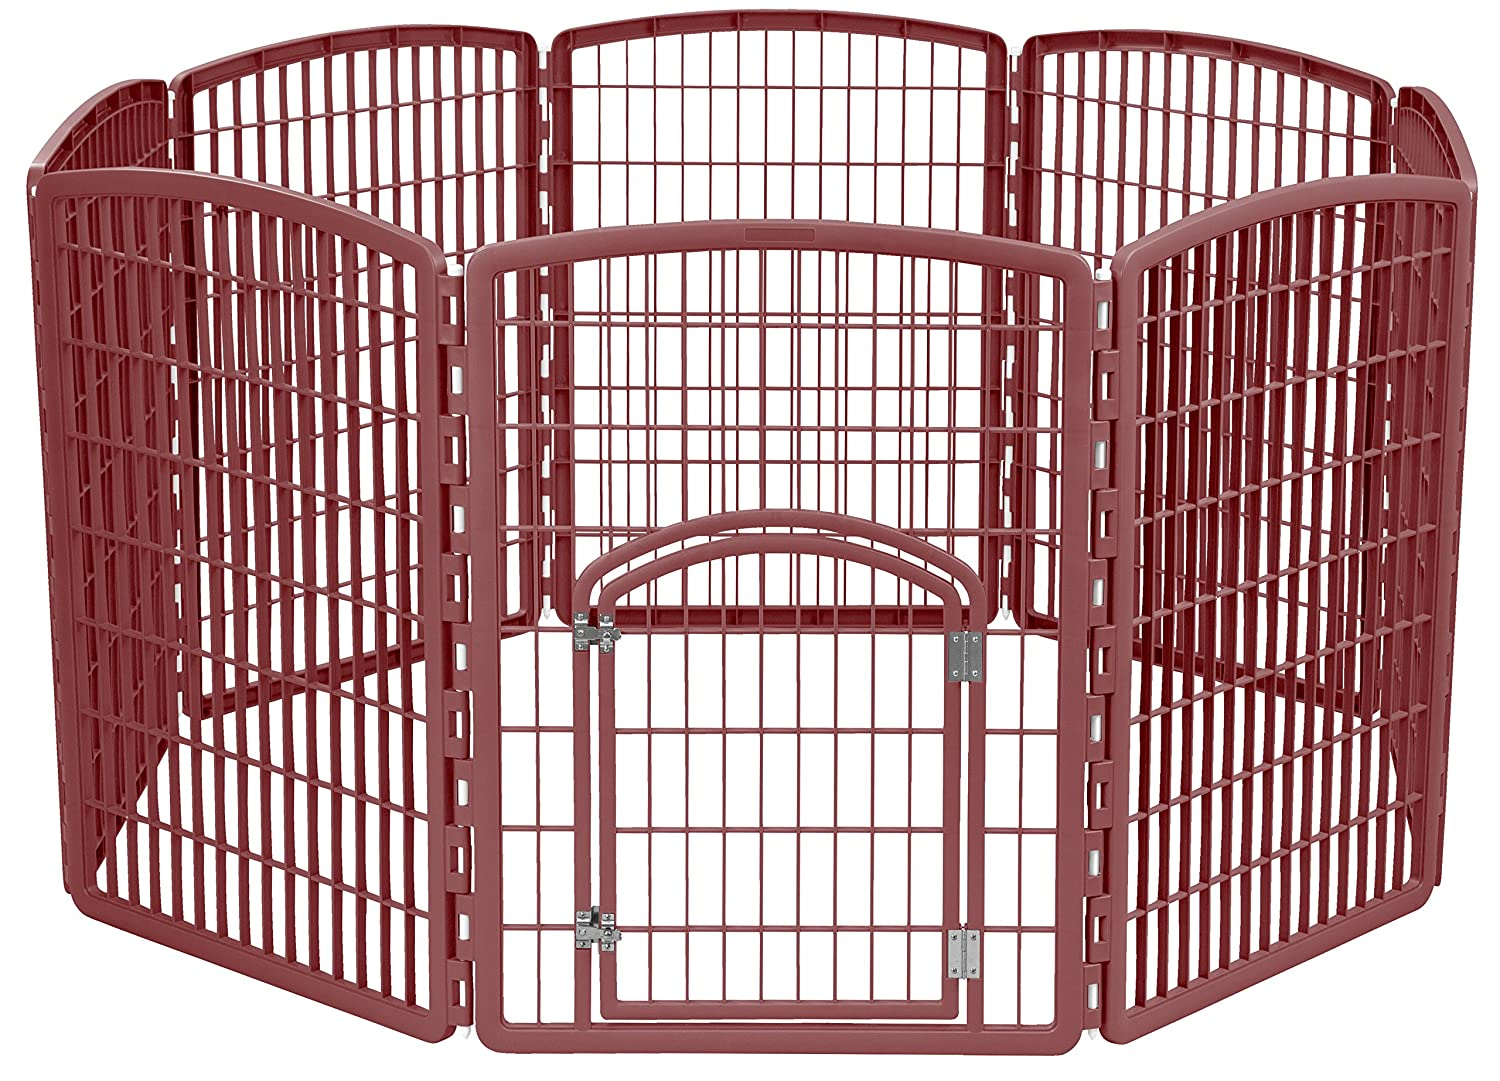 IRIS 34'' Exercise 8-Panel Pet Playpen with Door, Brown